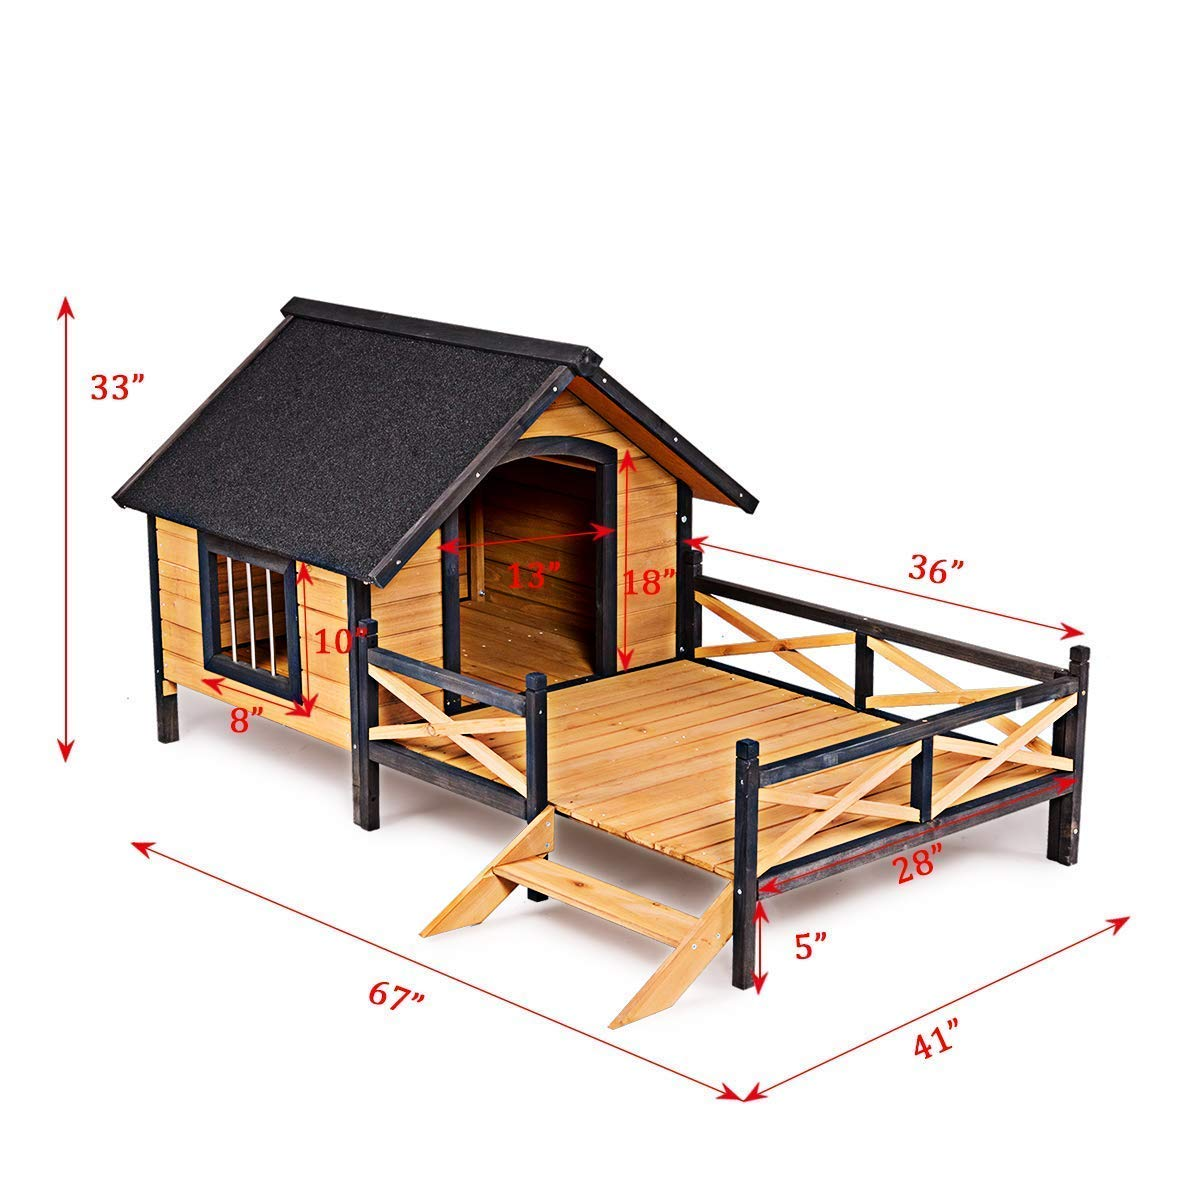 Tangkula Wood Dog House, Cabin Style Large Elevated Weather Waterproof Outdoor Pet Dog House, Lodge with Porch, Spacious Deck for Sunny Nap, Wooden Pet Dog House by Tangkula (Image #6)